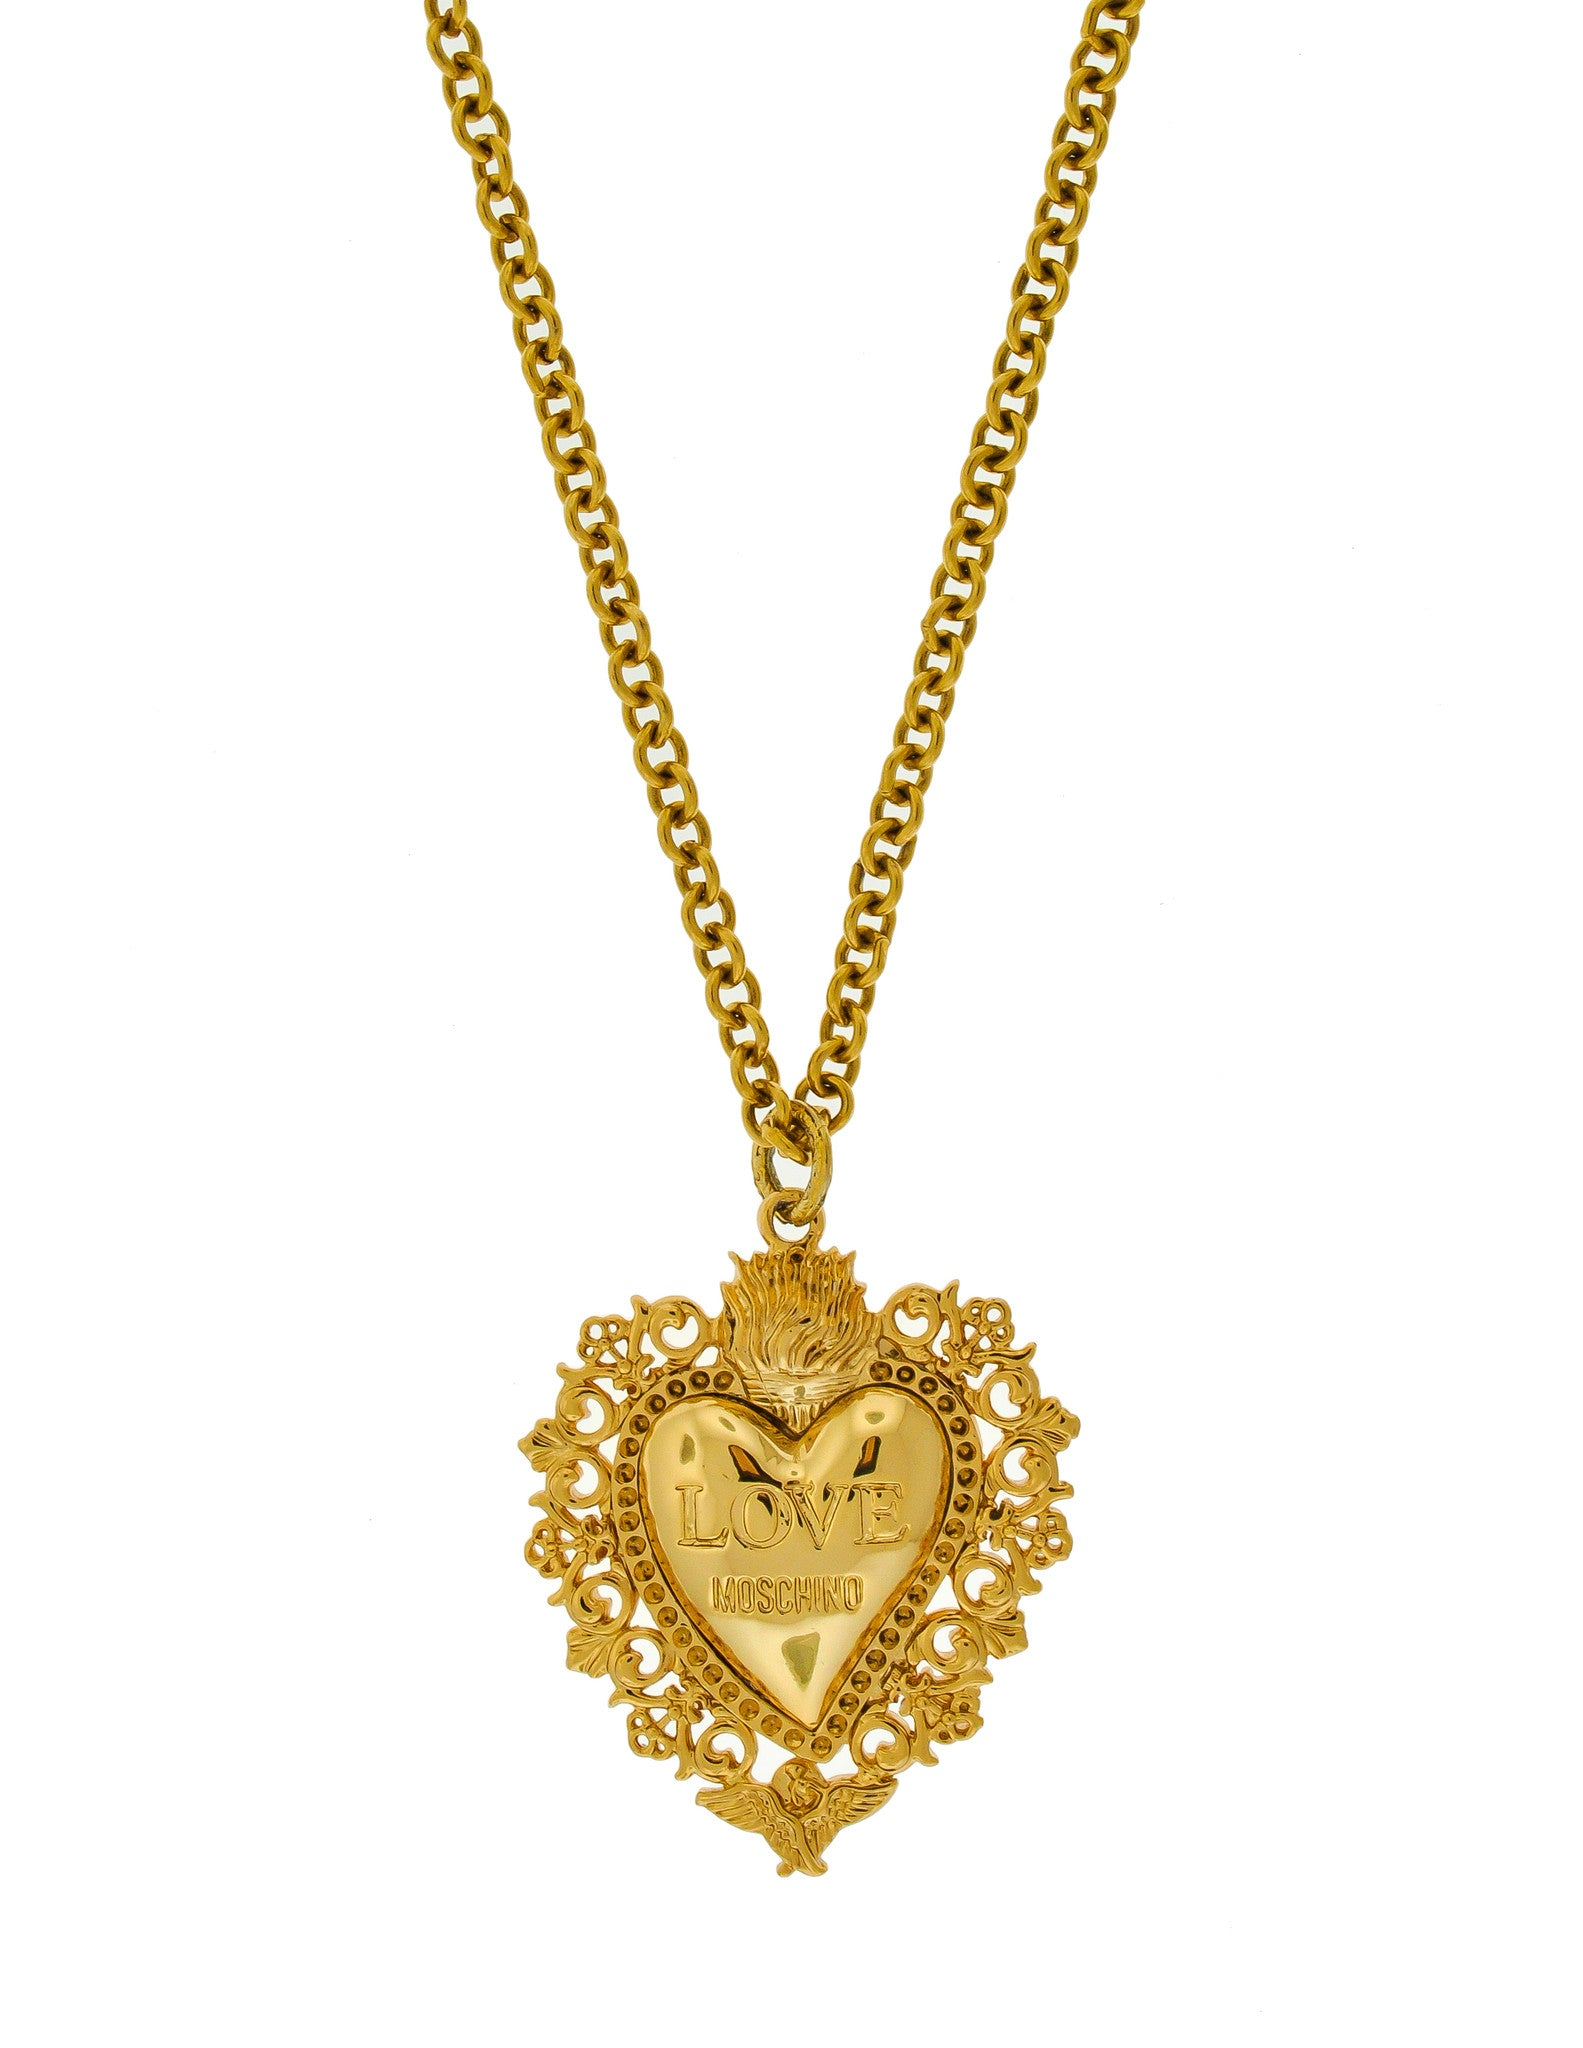 Love Moschino Vintage Gold Sacred Heart Necklace - Amarcord Vintage Fashion  - 1